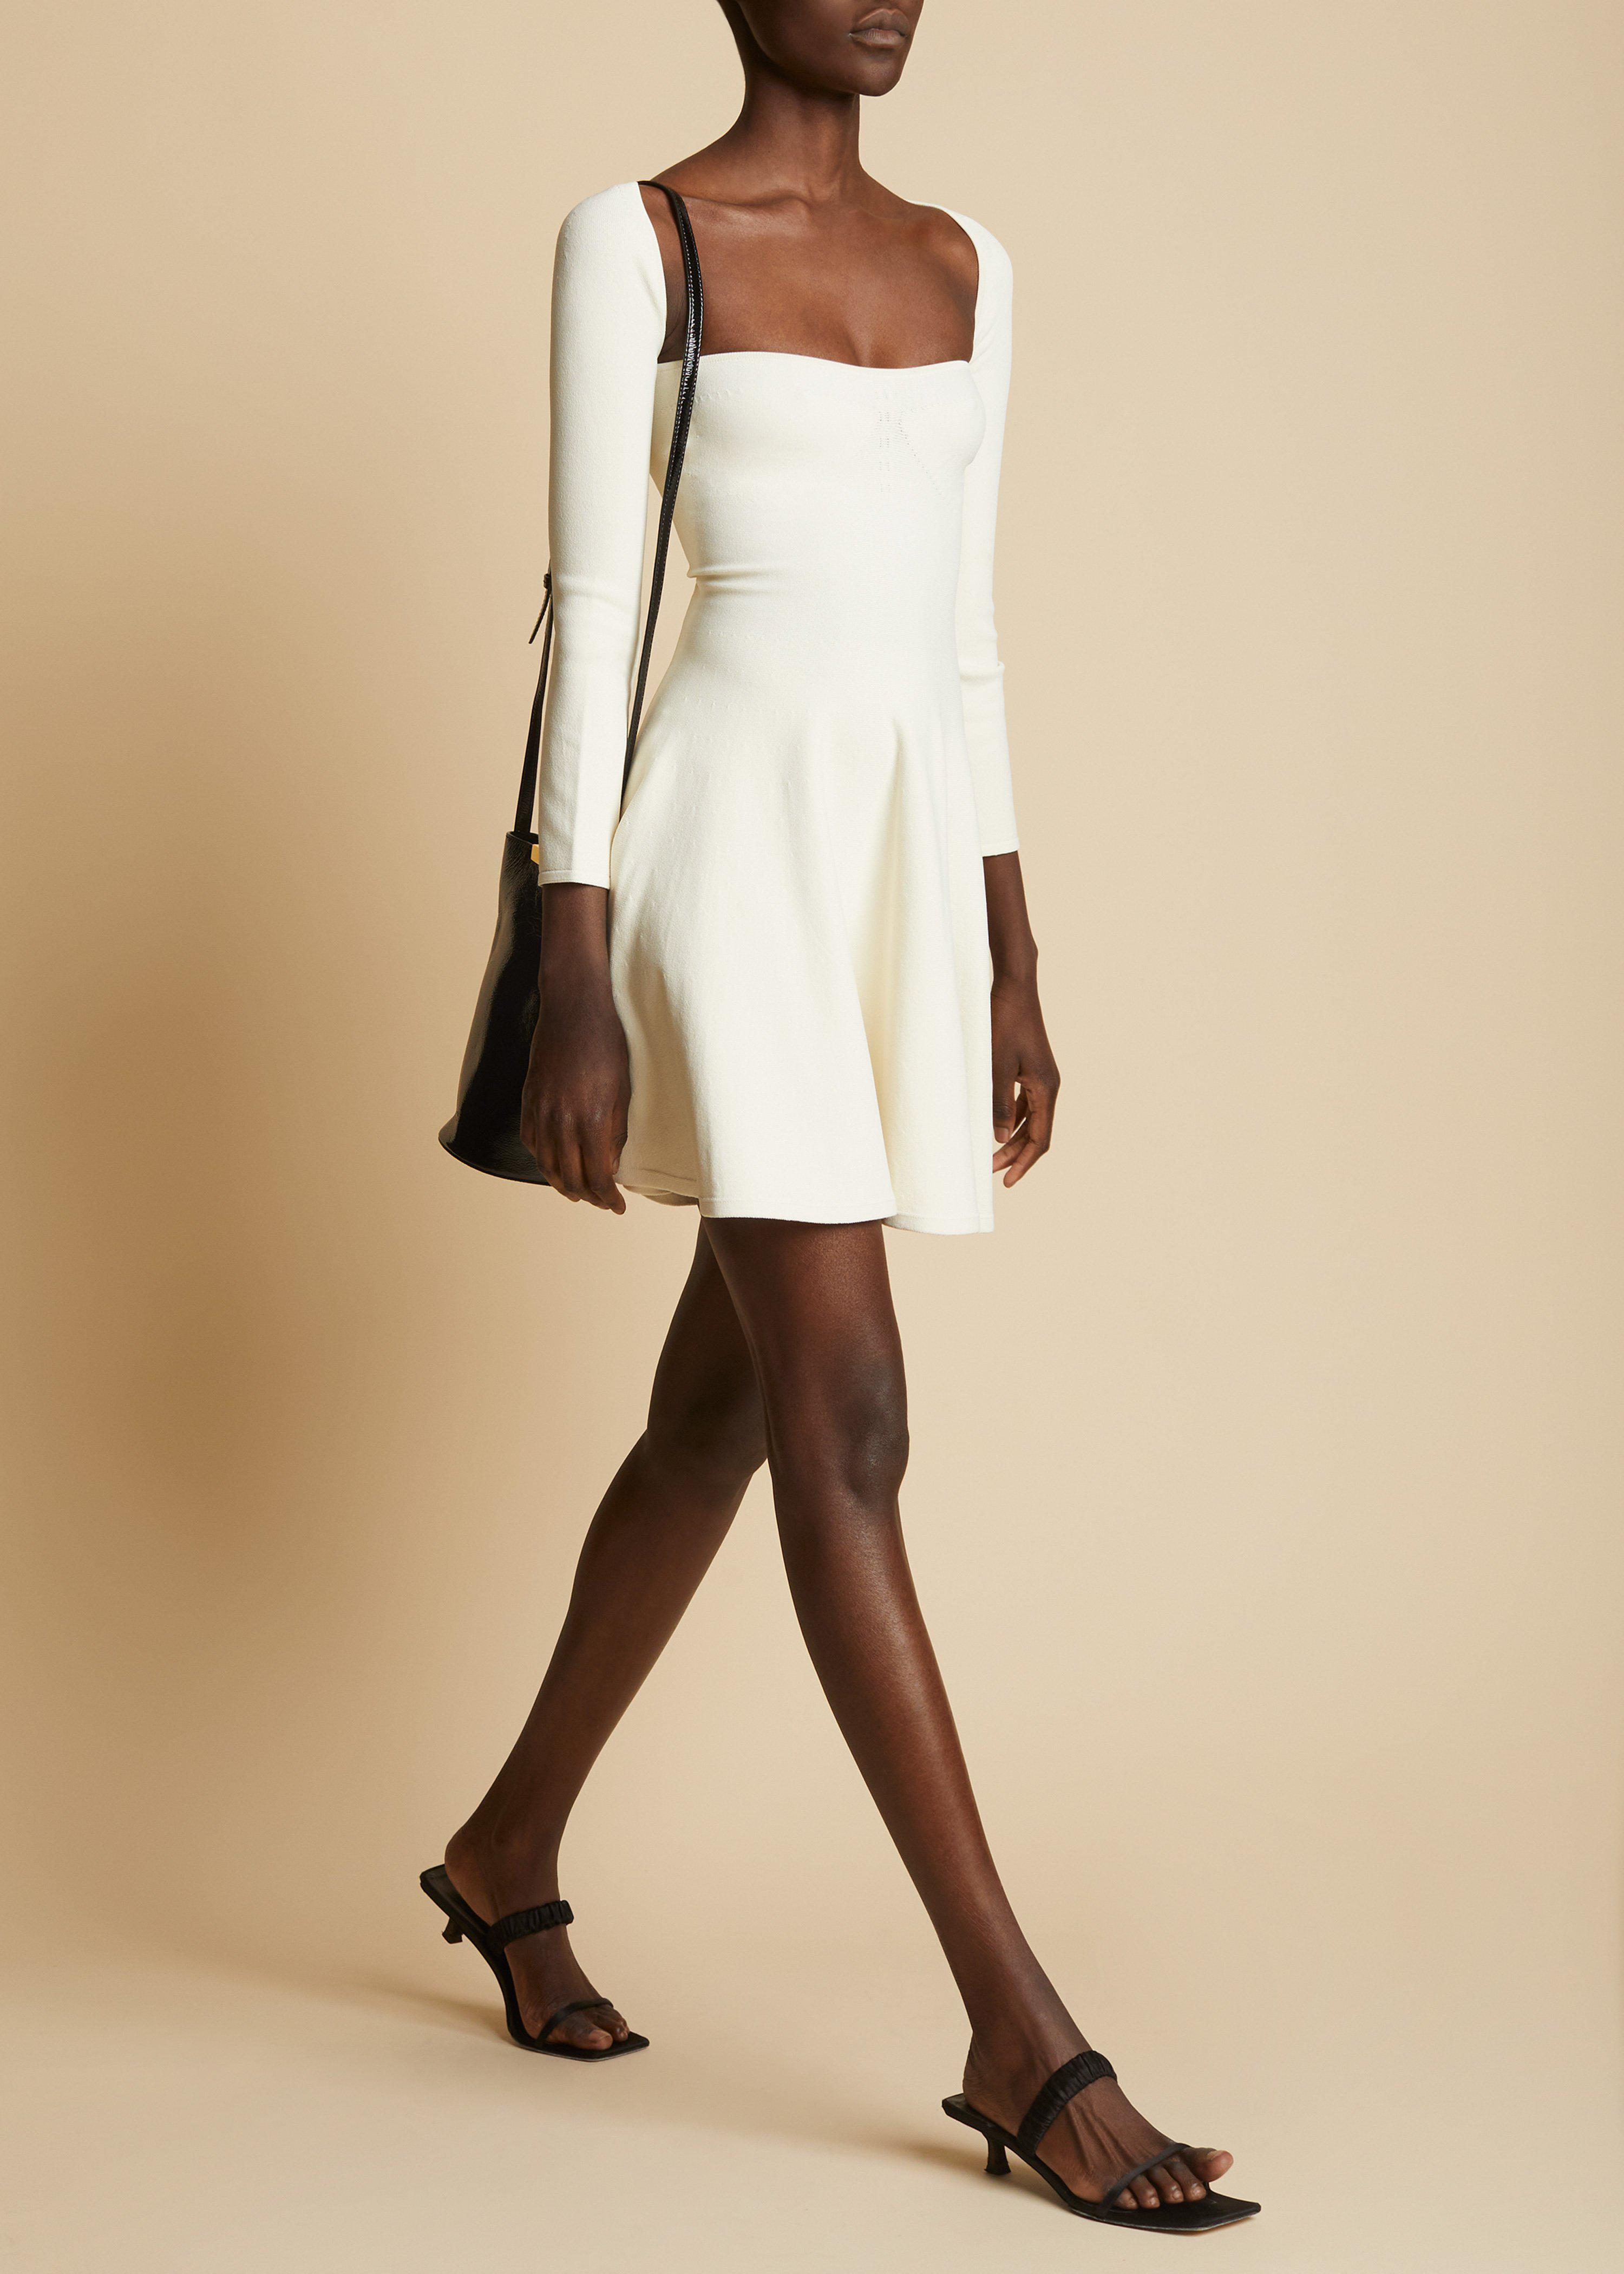 The Dylan Dress in Ivory